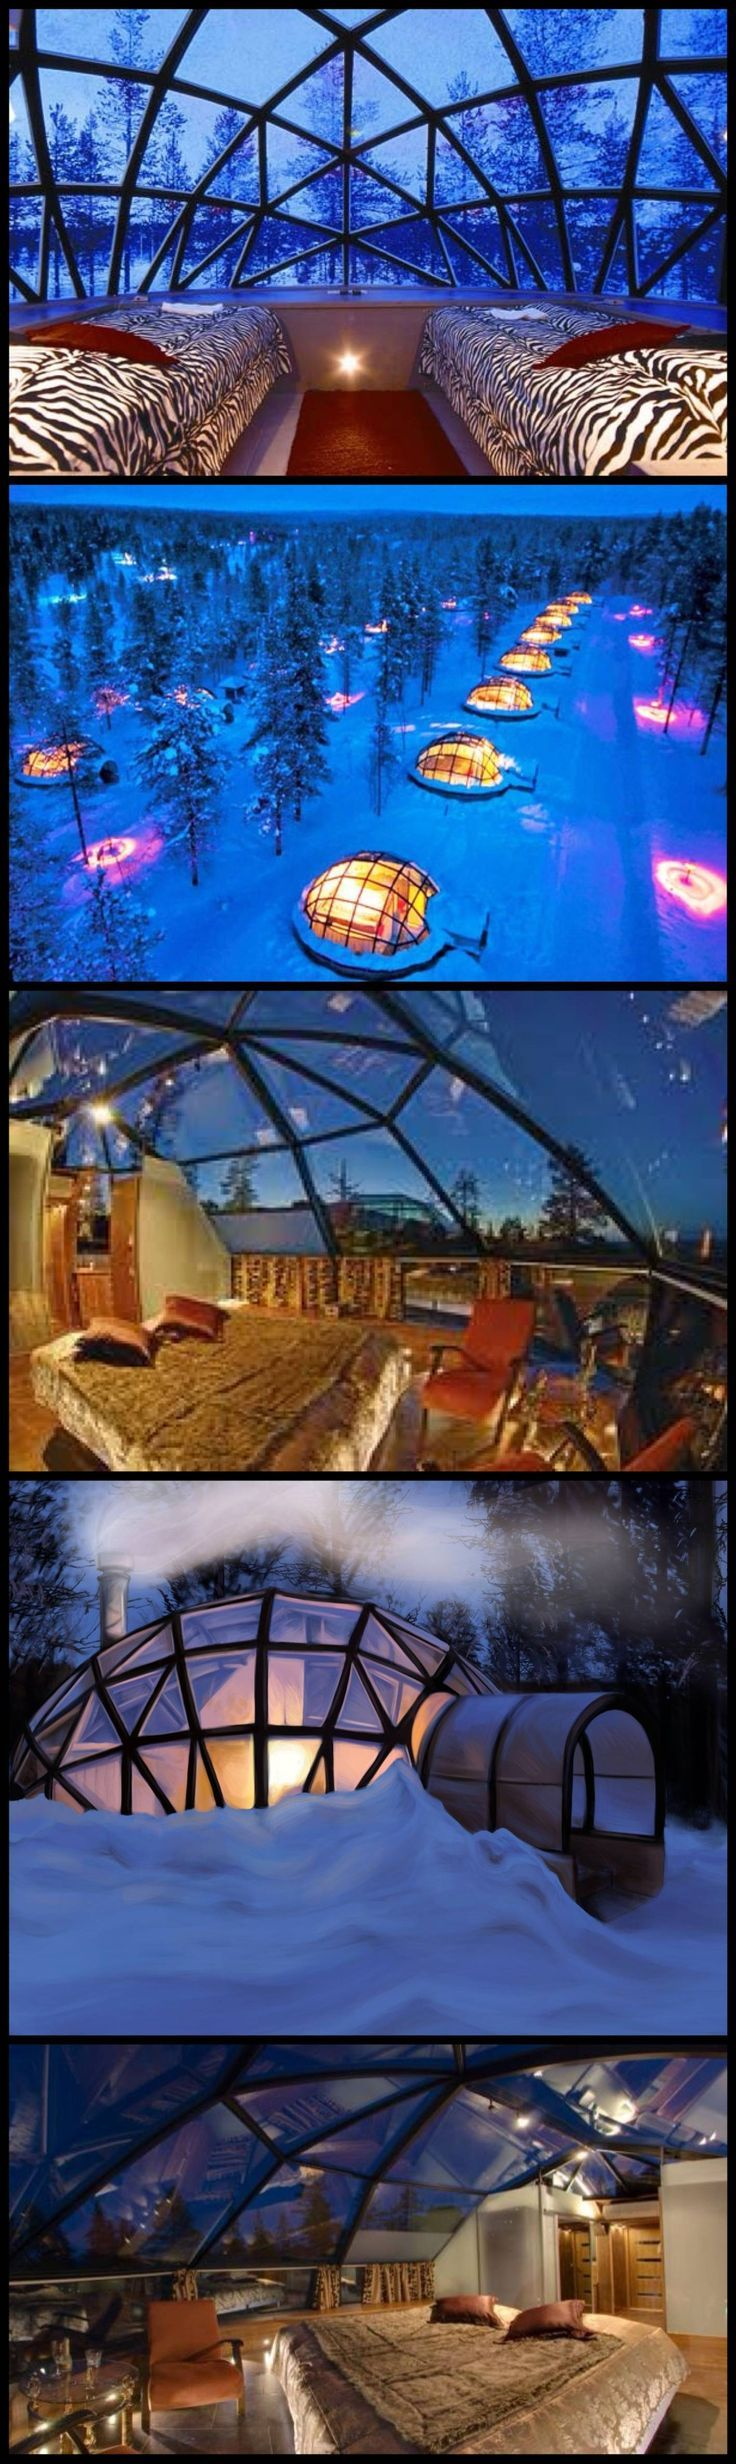 Best way to see the Northern Lights... Finland is officially on the bucket list!